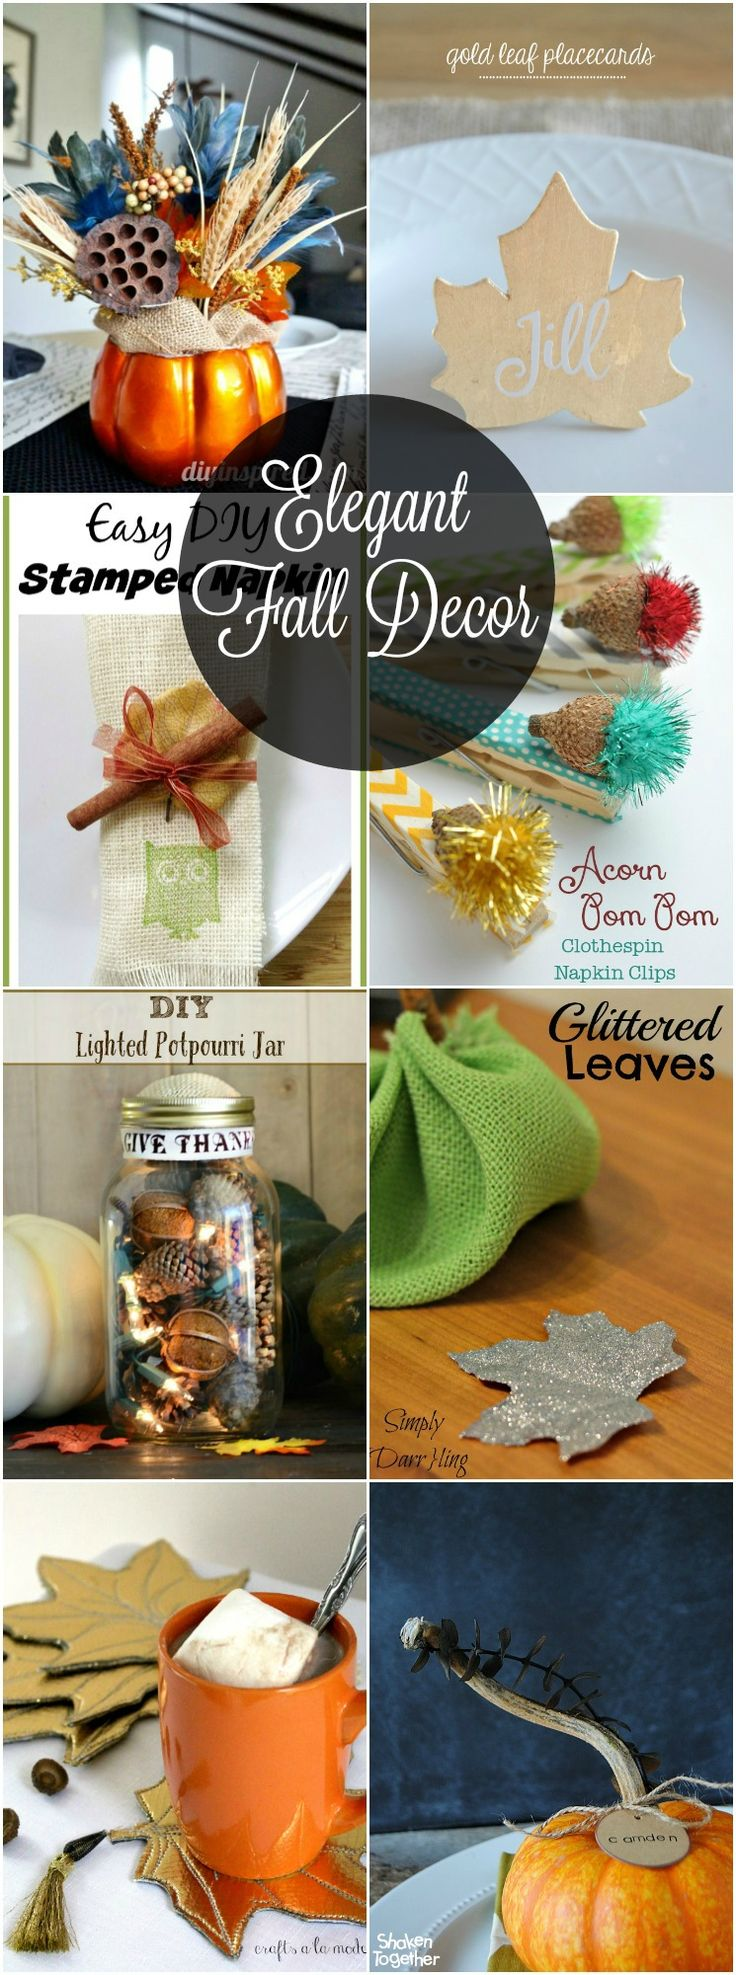 Elegant Fall Decor that is the perfect way to set the decor for Thanksgiving